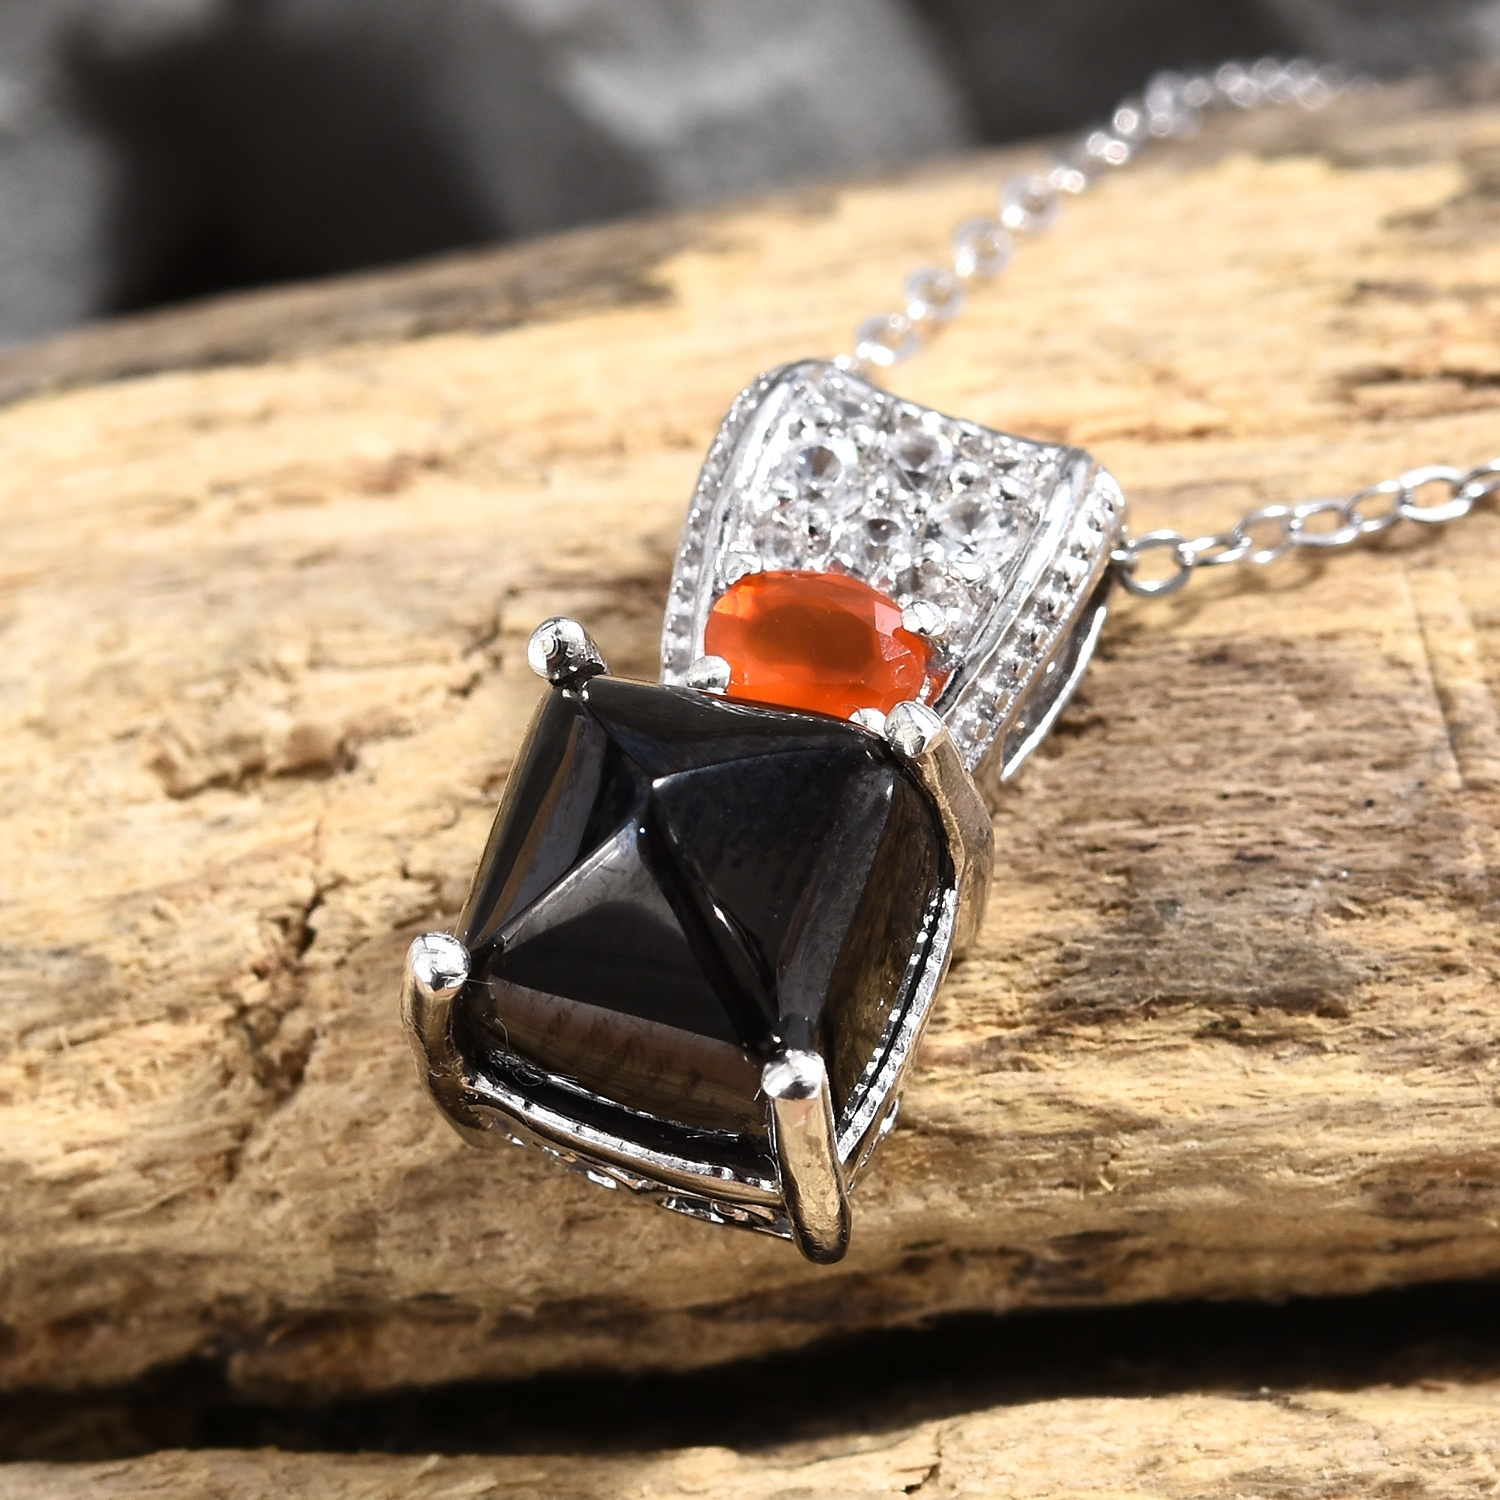 Shungite pendant with carnelian accent displayed on drift wood.